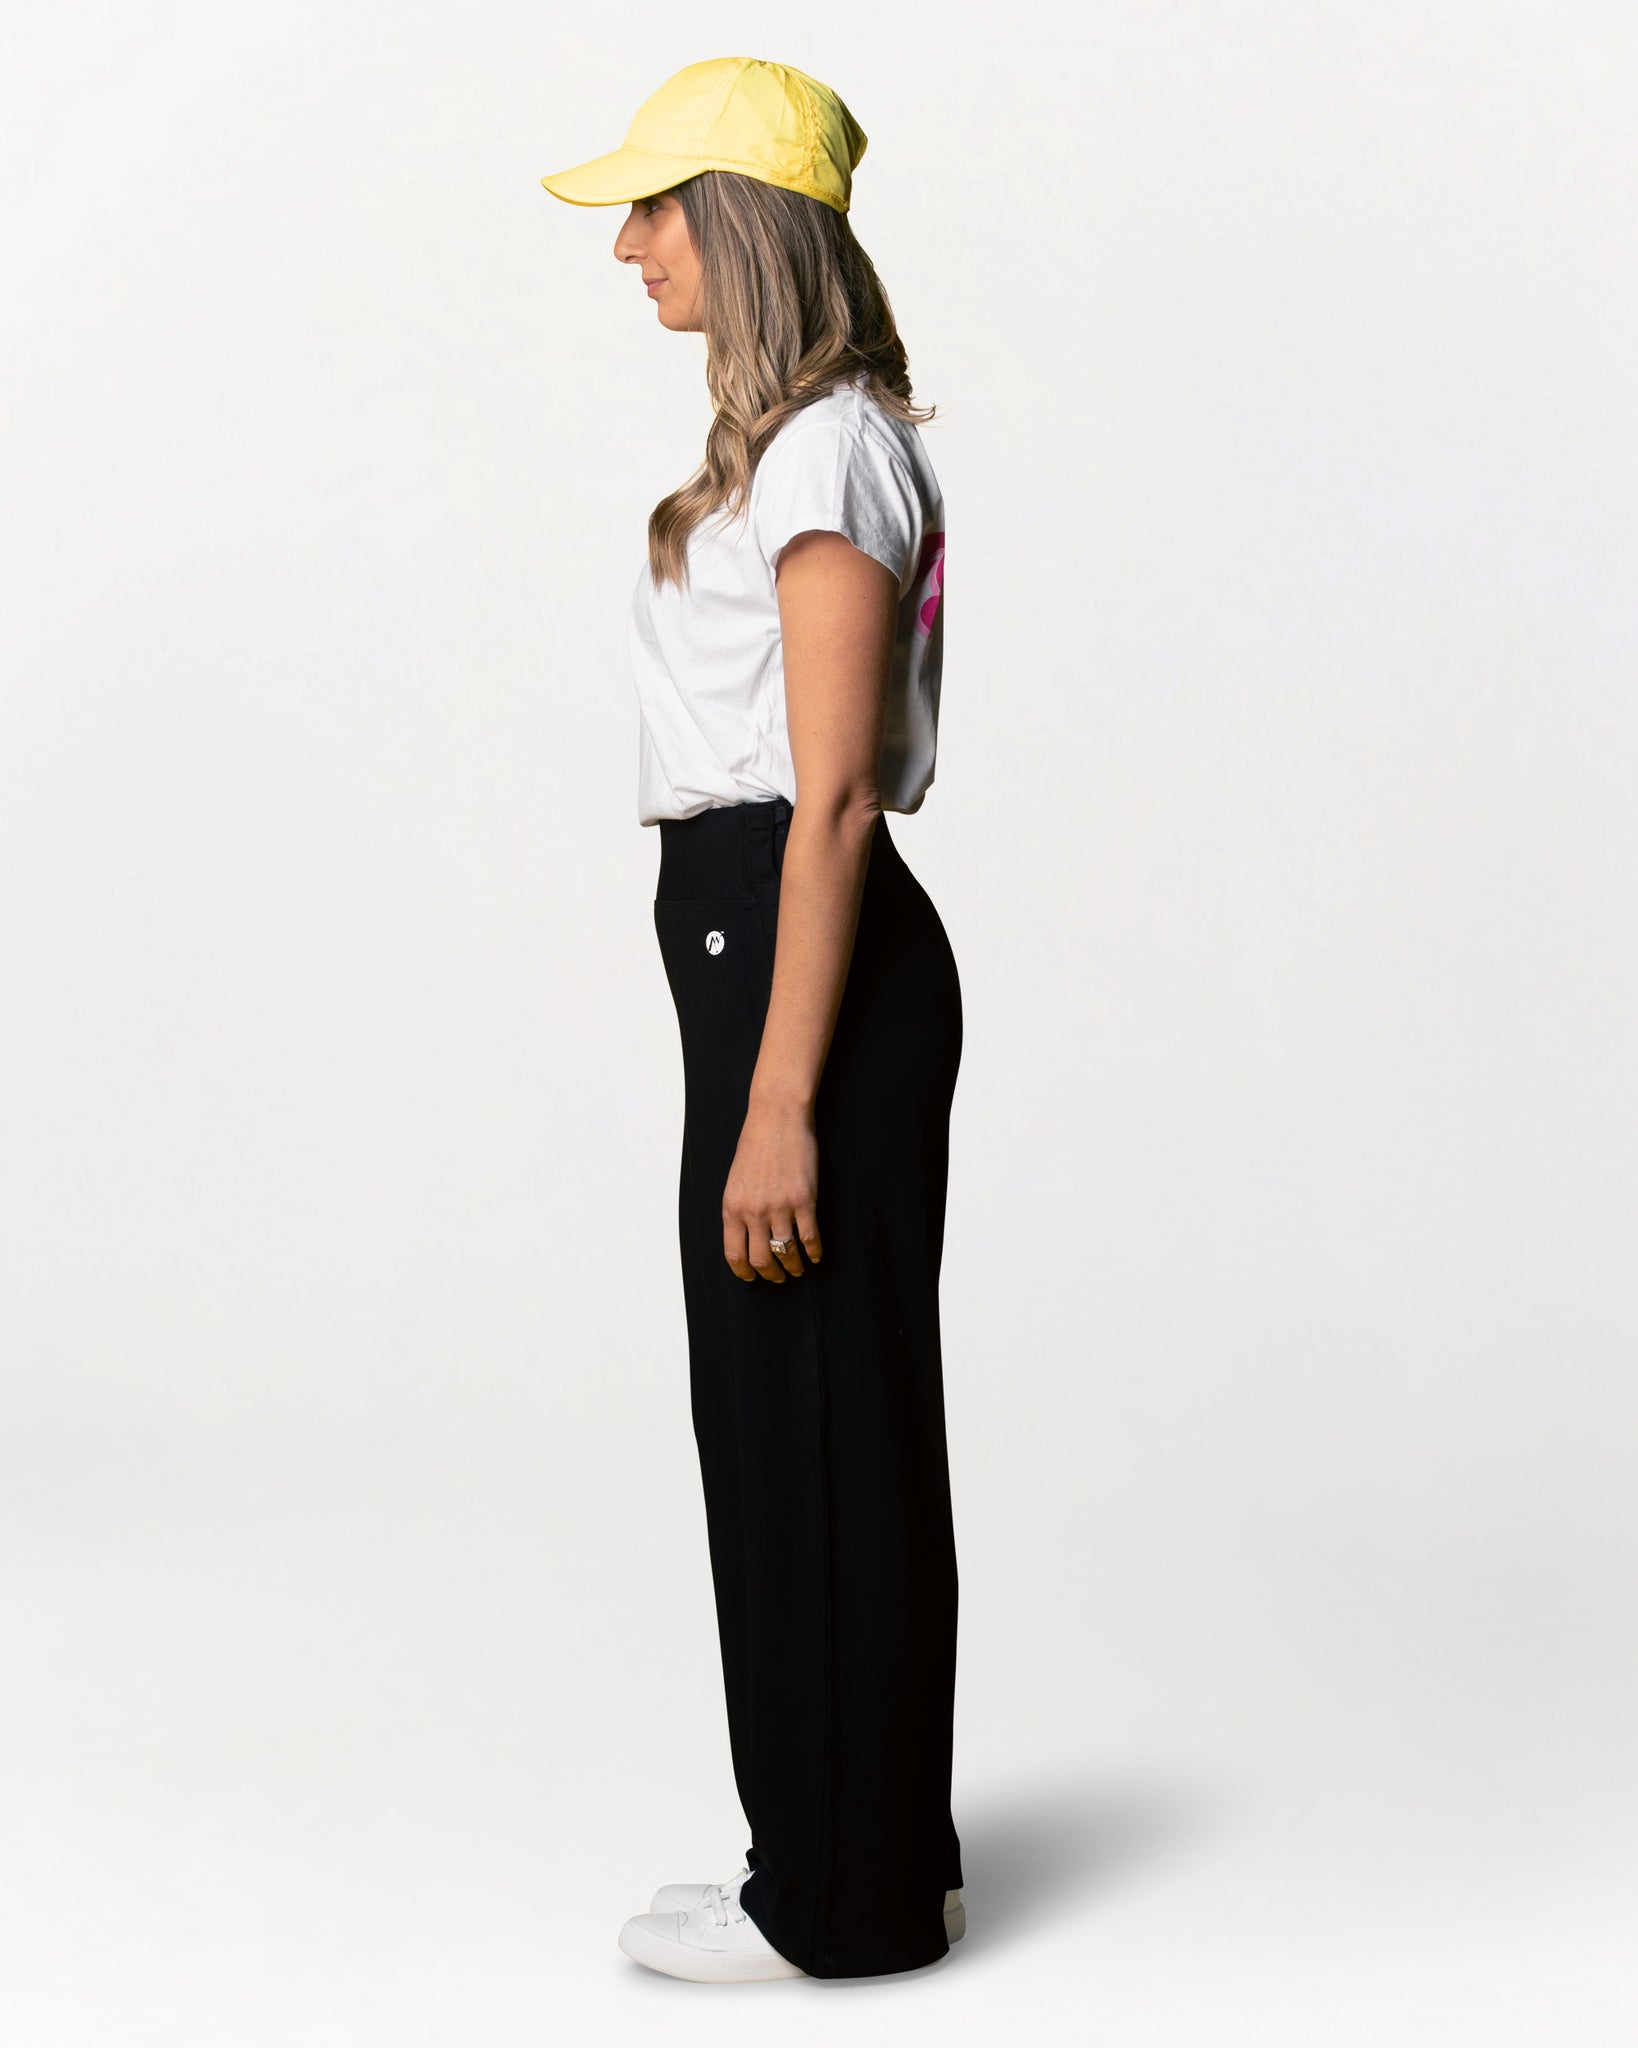 The Snapit Pants